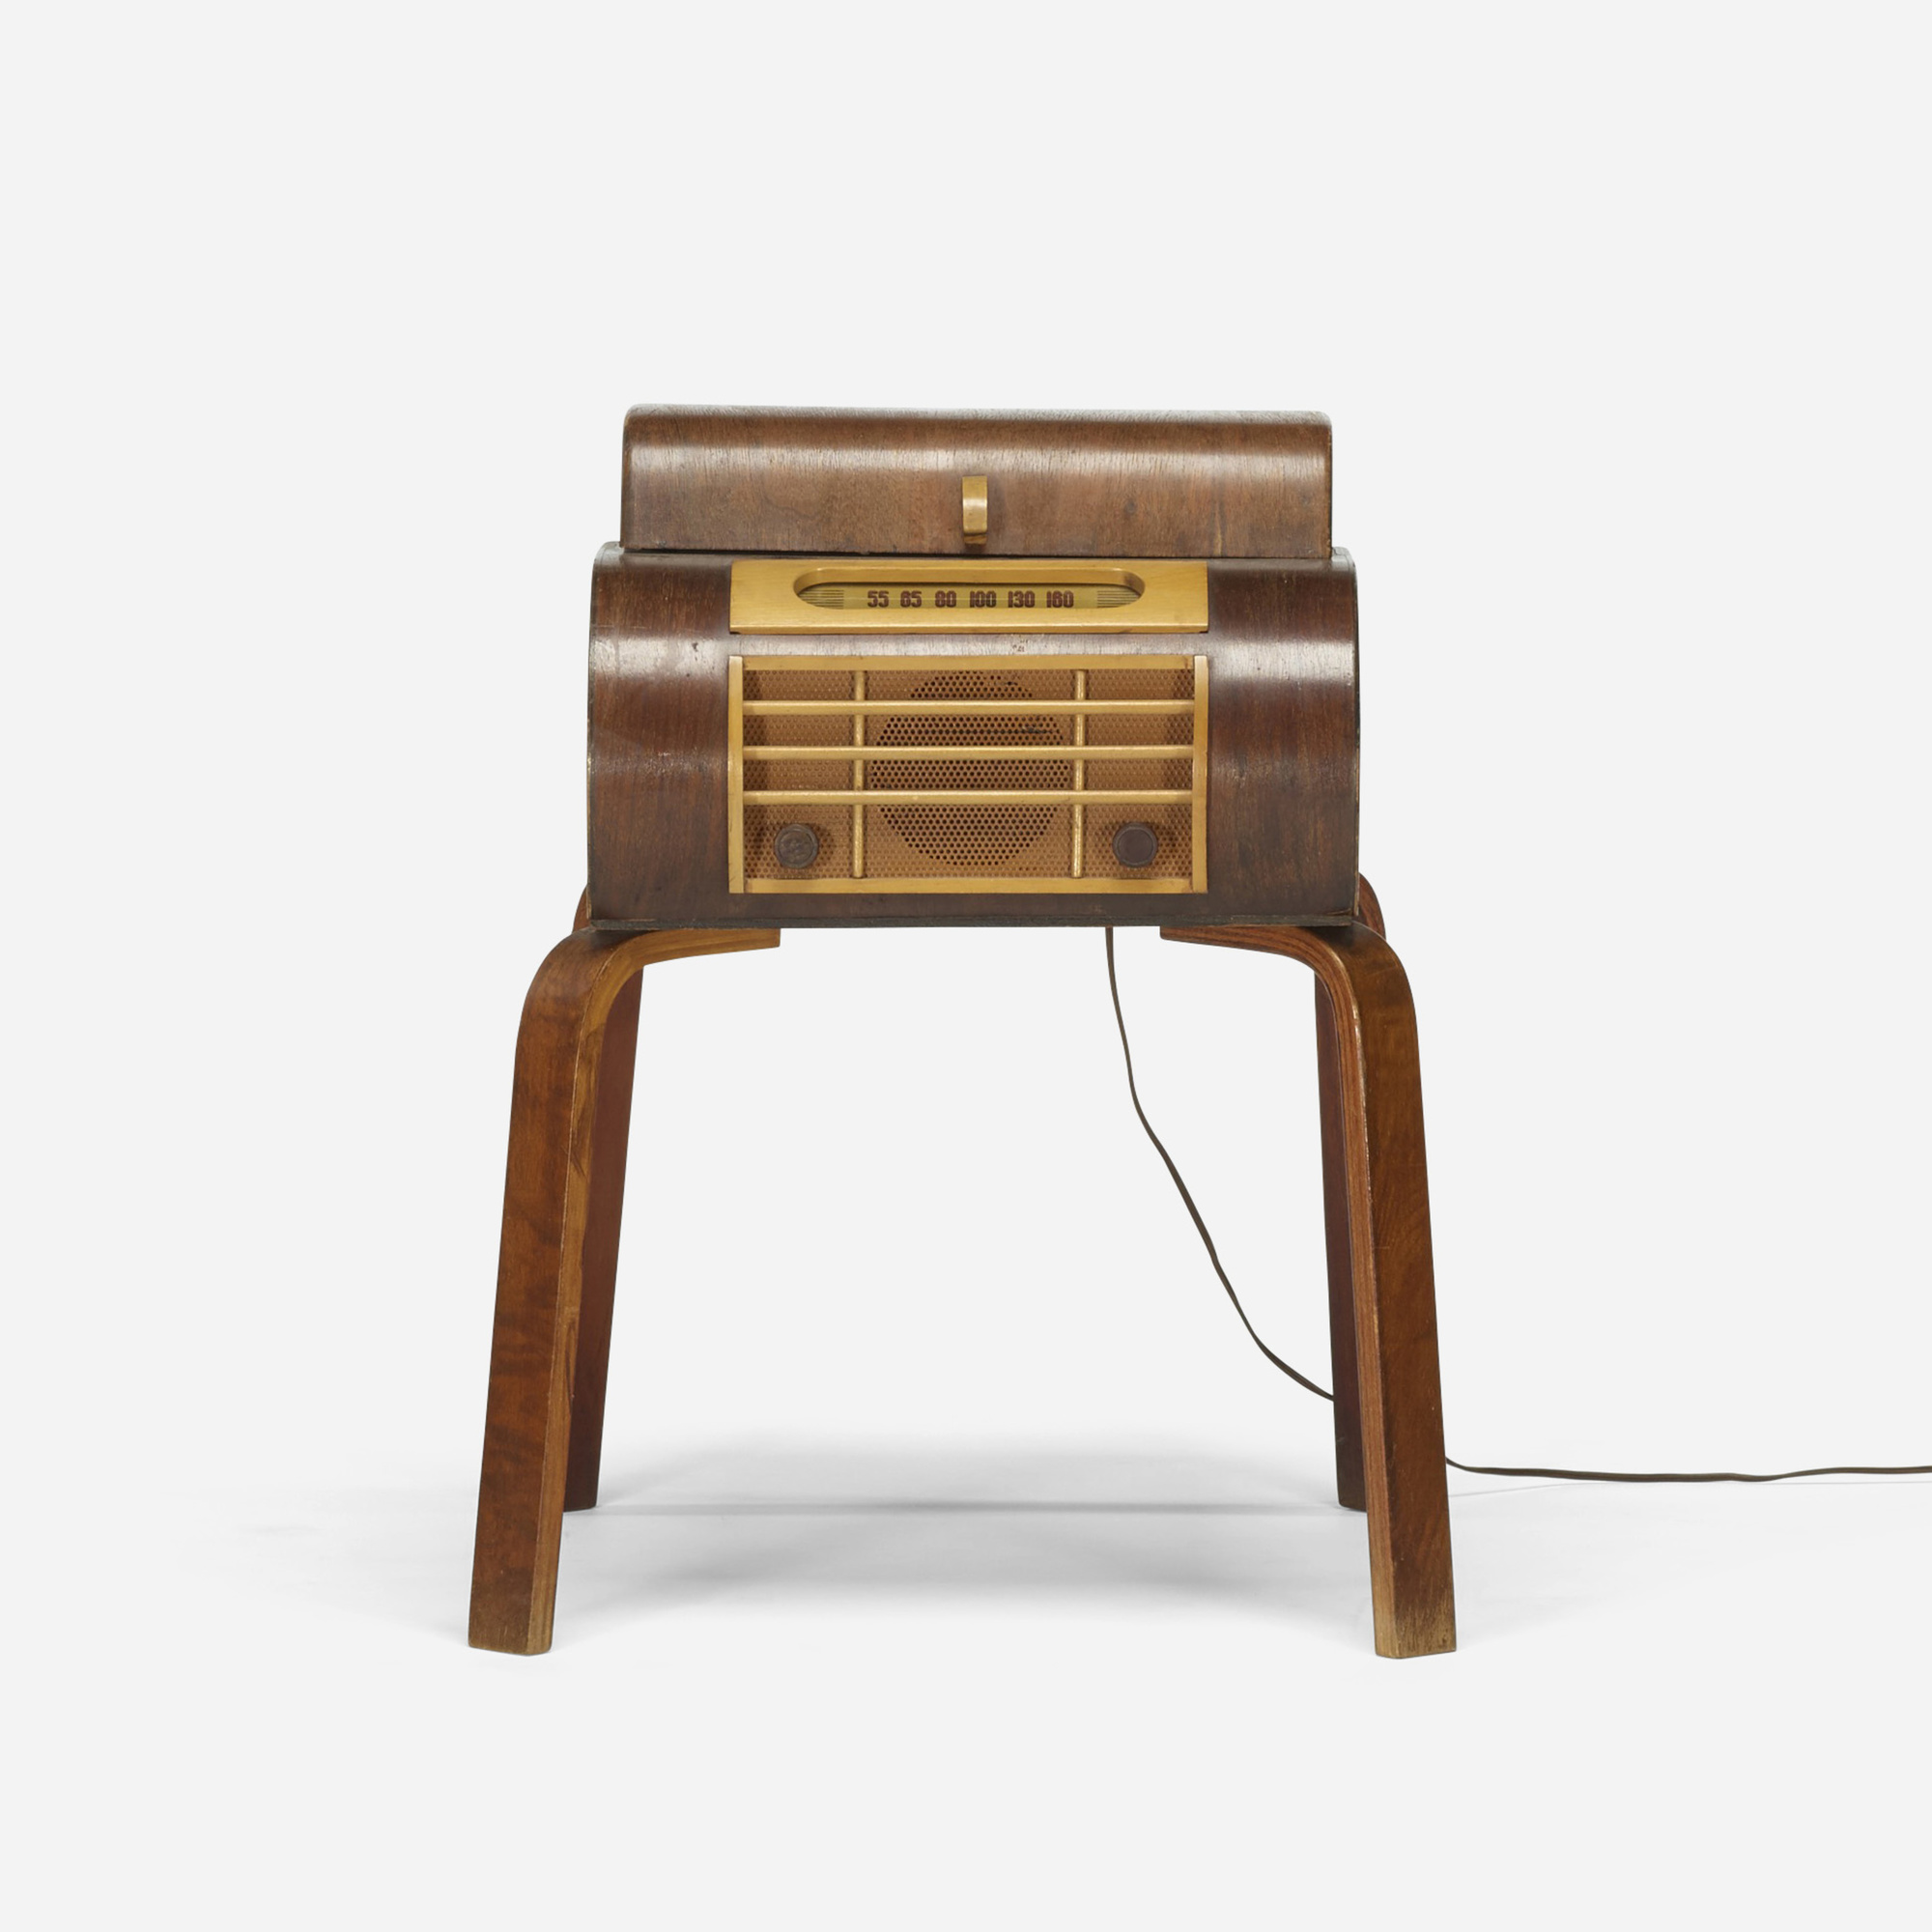 264: In the manner of Charles and Ray Eames / radio and turntable (1 of 3)